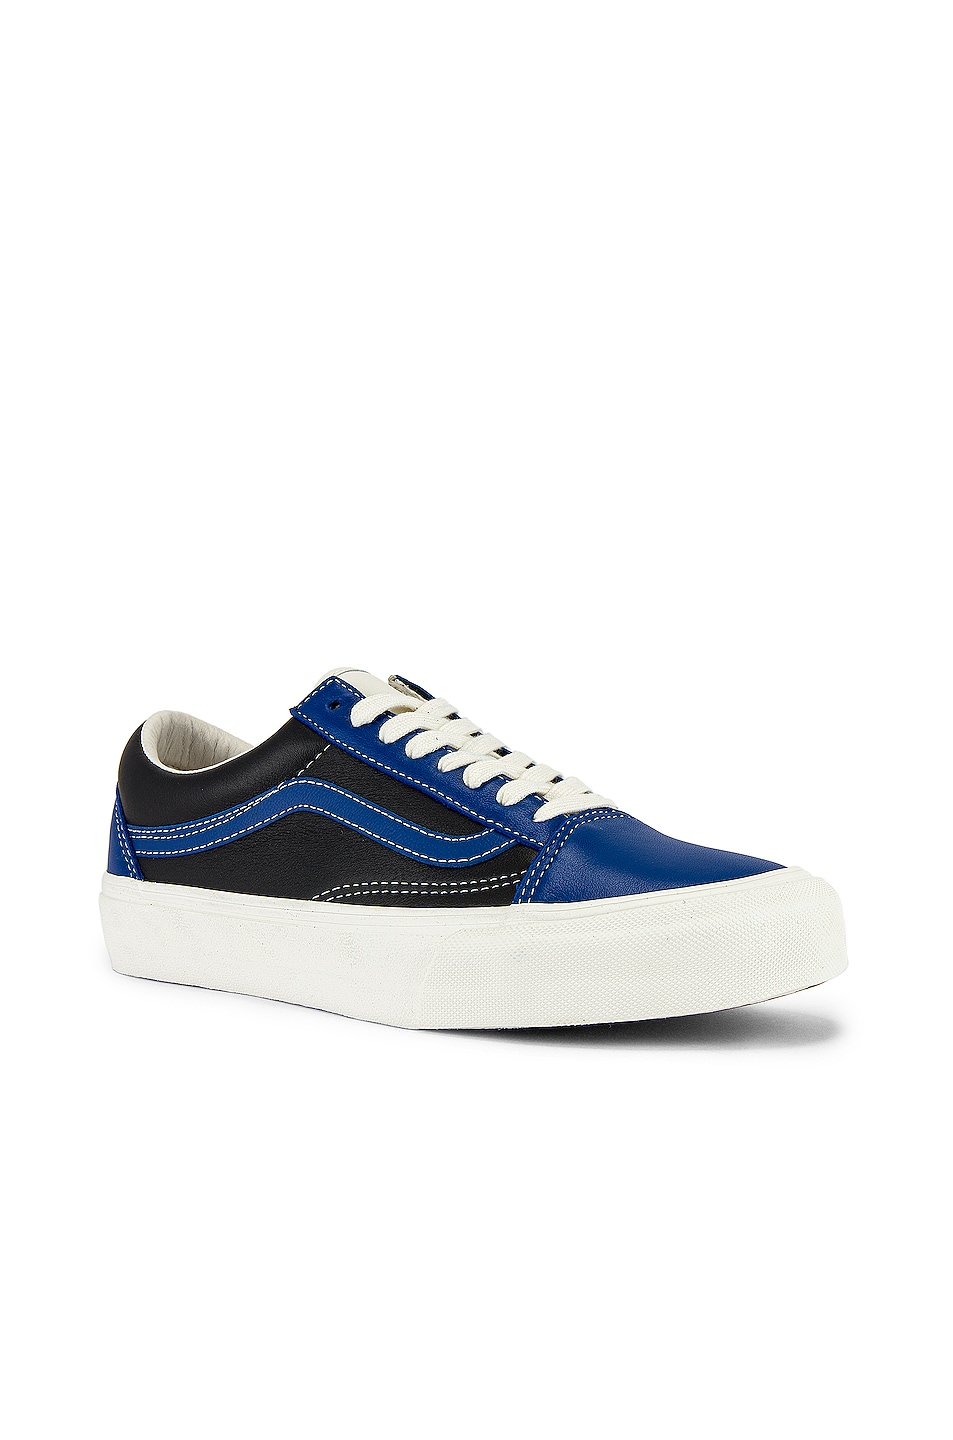 Image 1 of Vans Vault Old Skool VLT LX in True Blue & Marshmallow